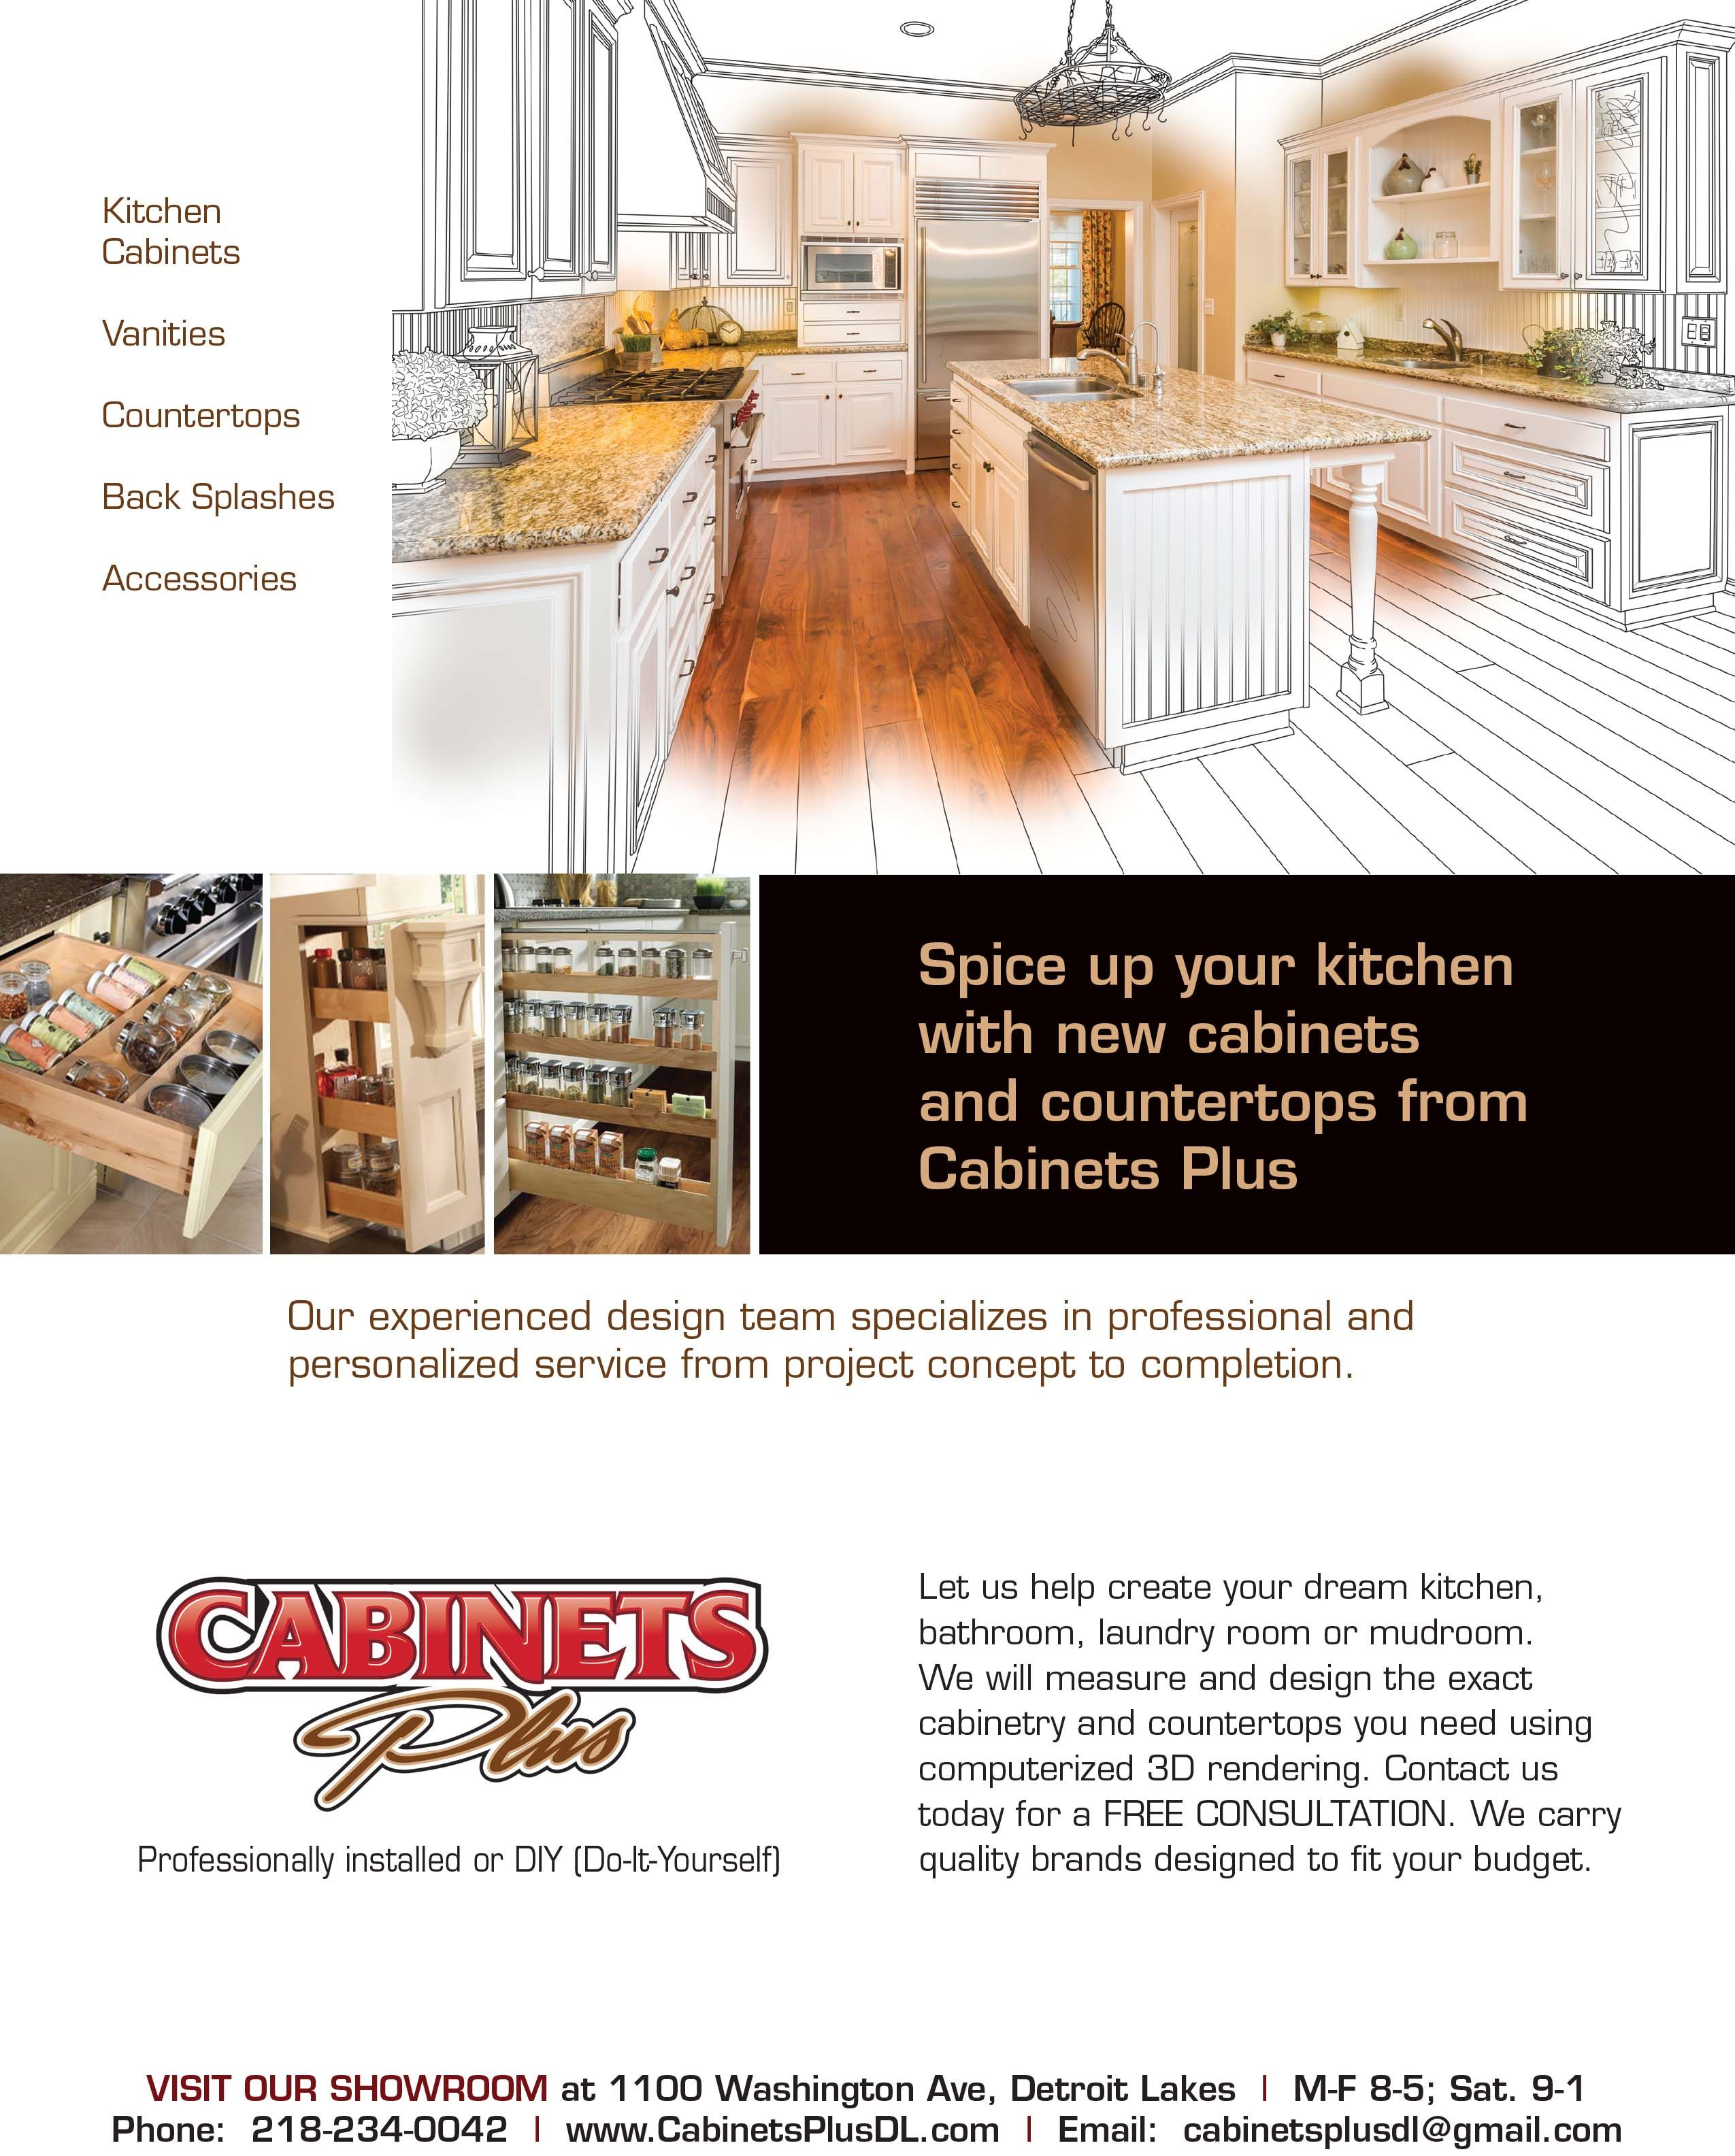 Cabinets To Go Bathroom Kitchen Cabinets Kitchen Cabinetry Detroit By Cabinets To Go